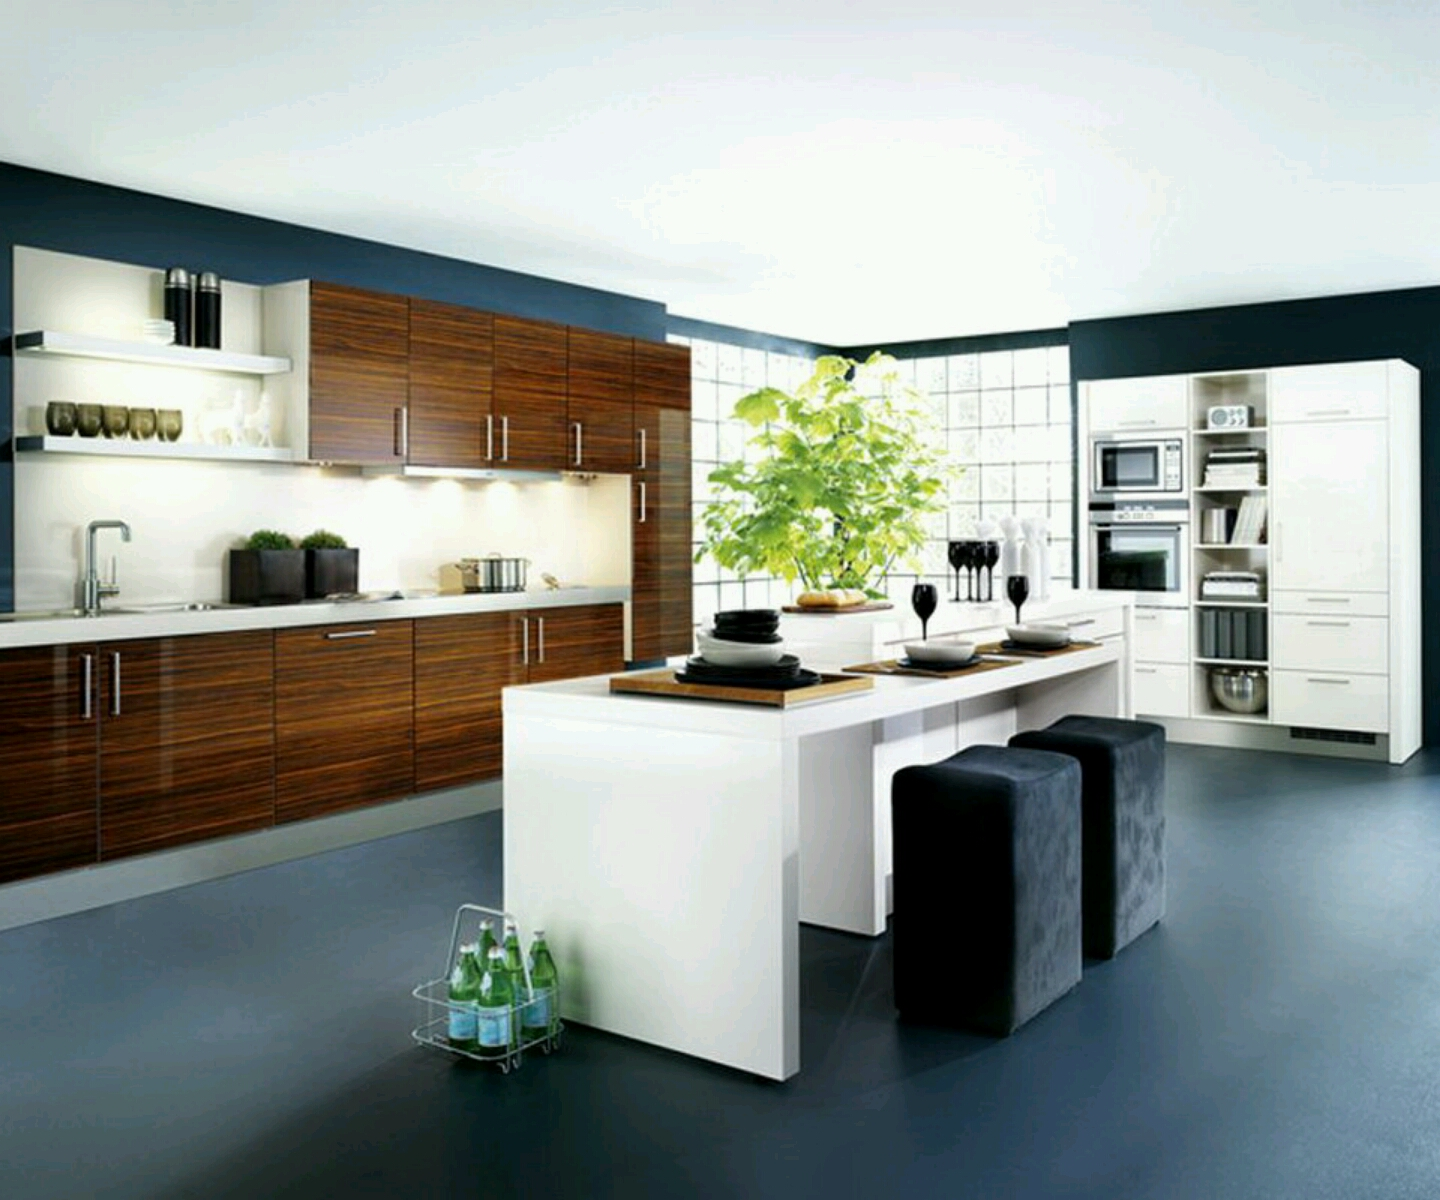 New home designs latest kitchen cabinets designs modern for Kitchen furniture design ideas